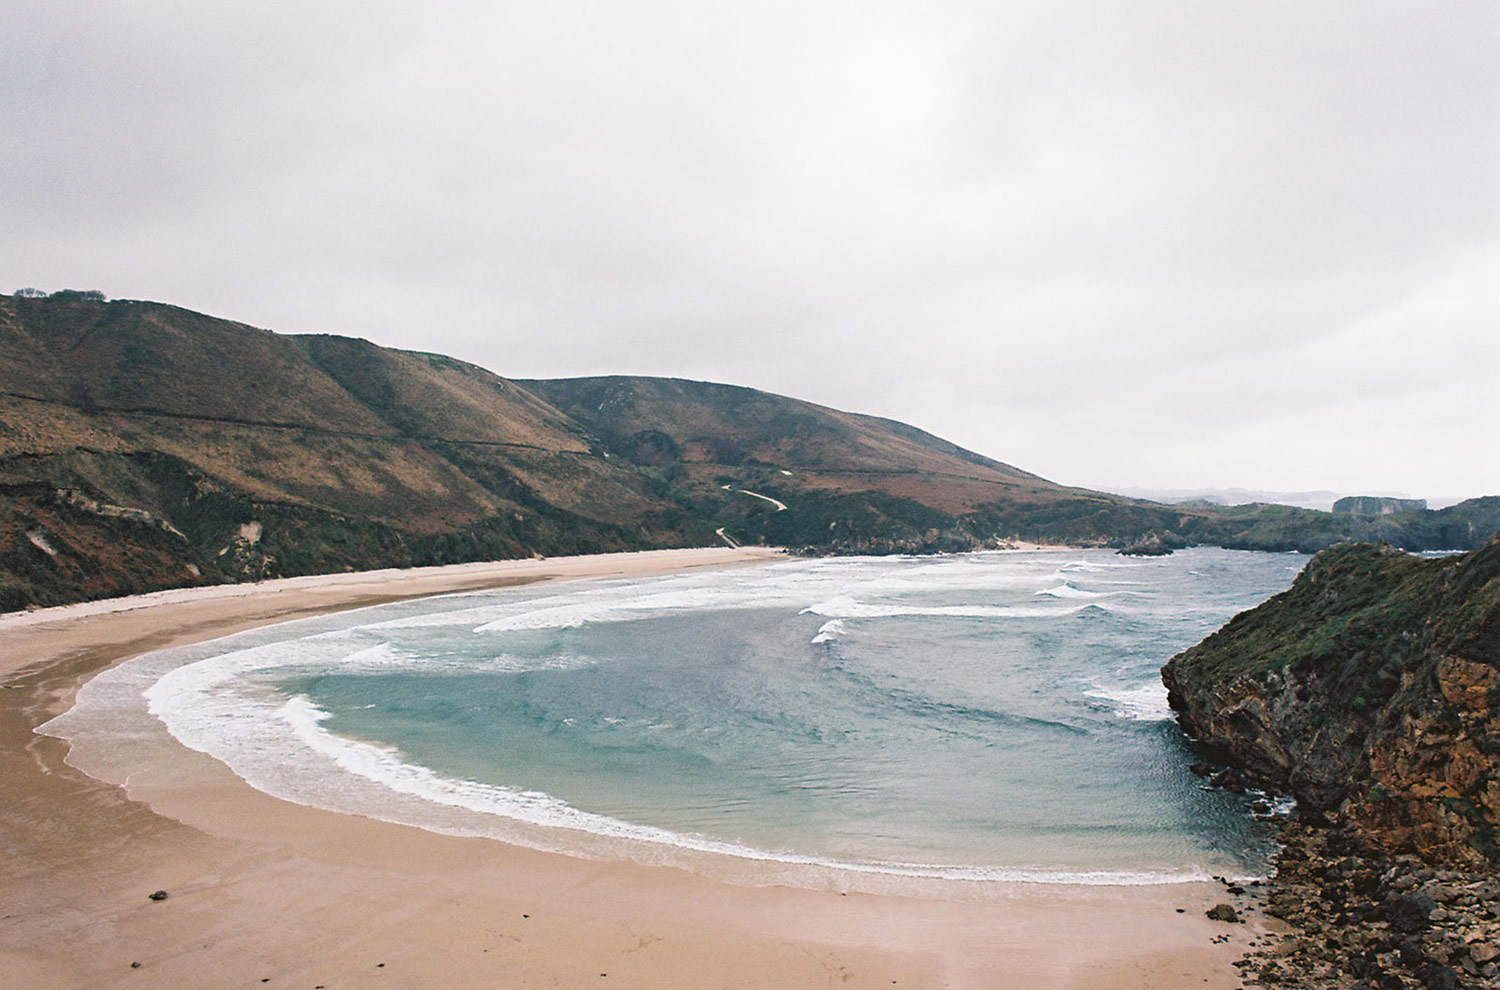 Torimbia is one of the most scenic beaches in northern Spain